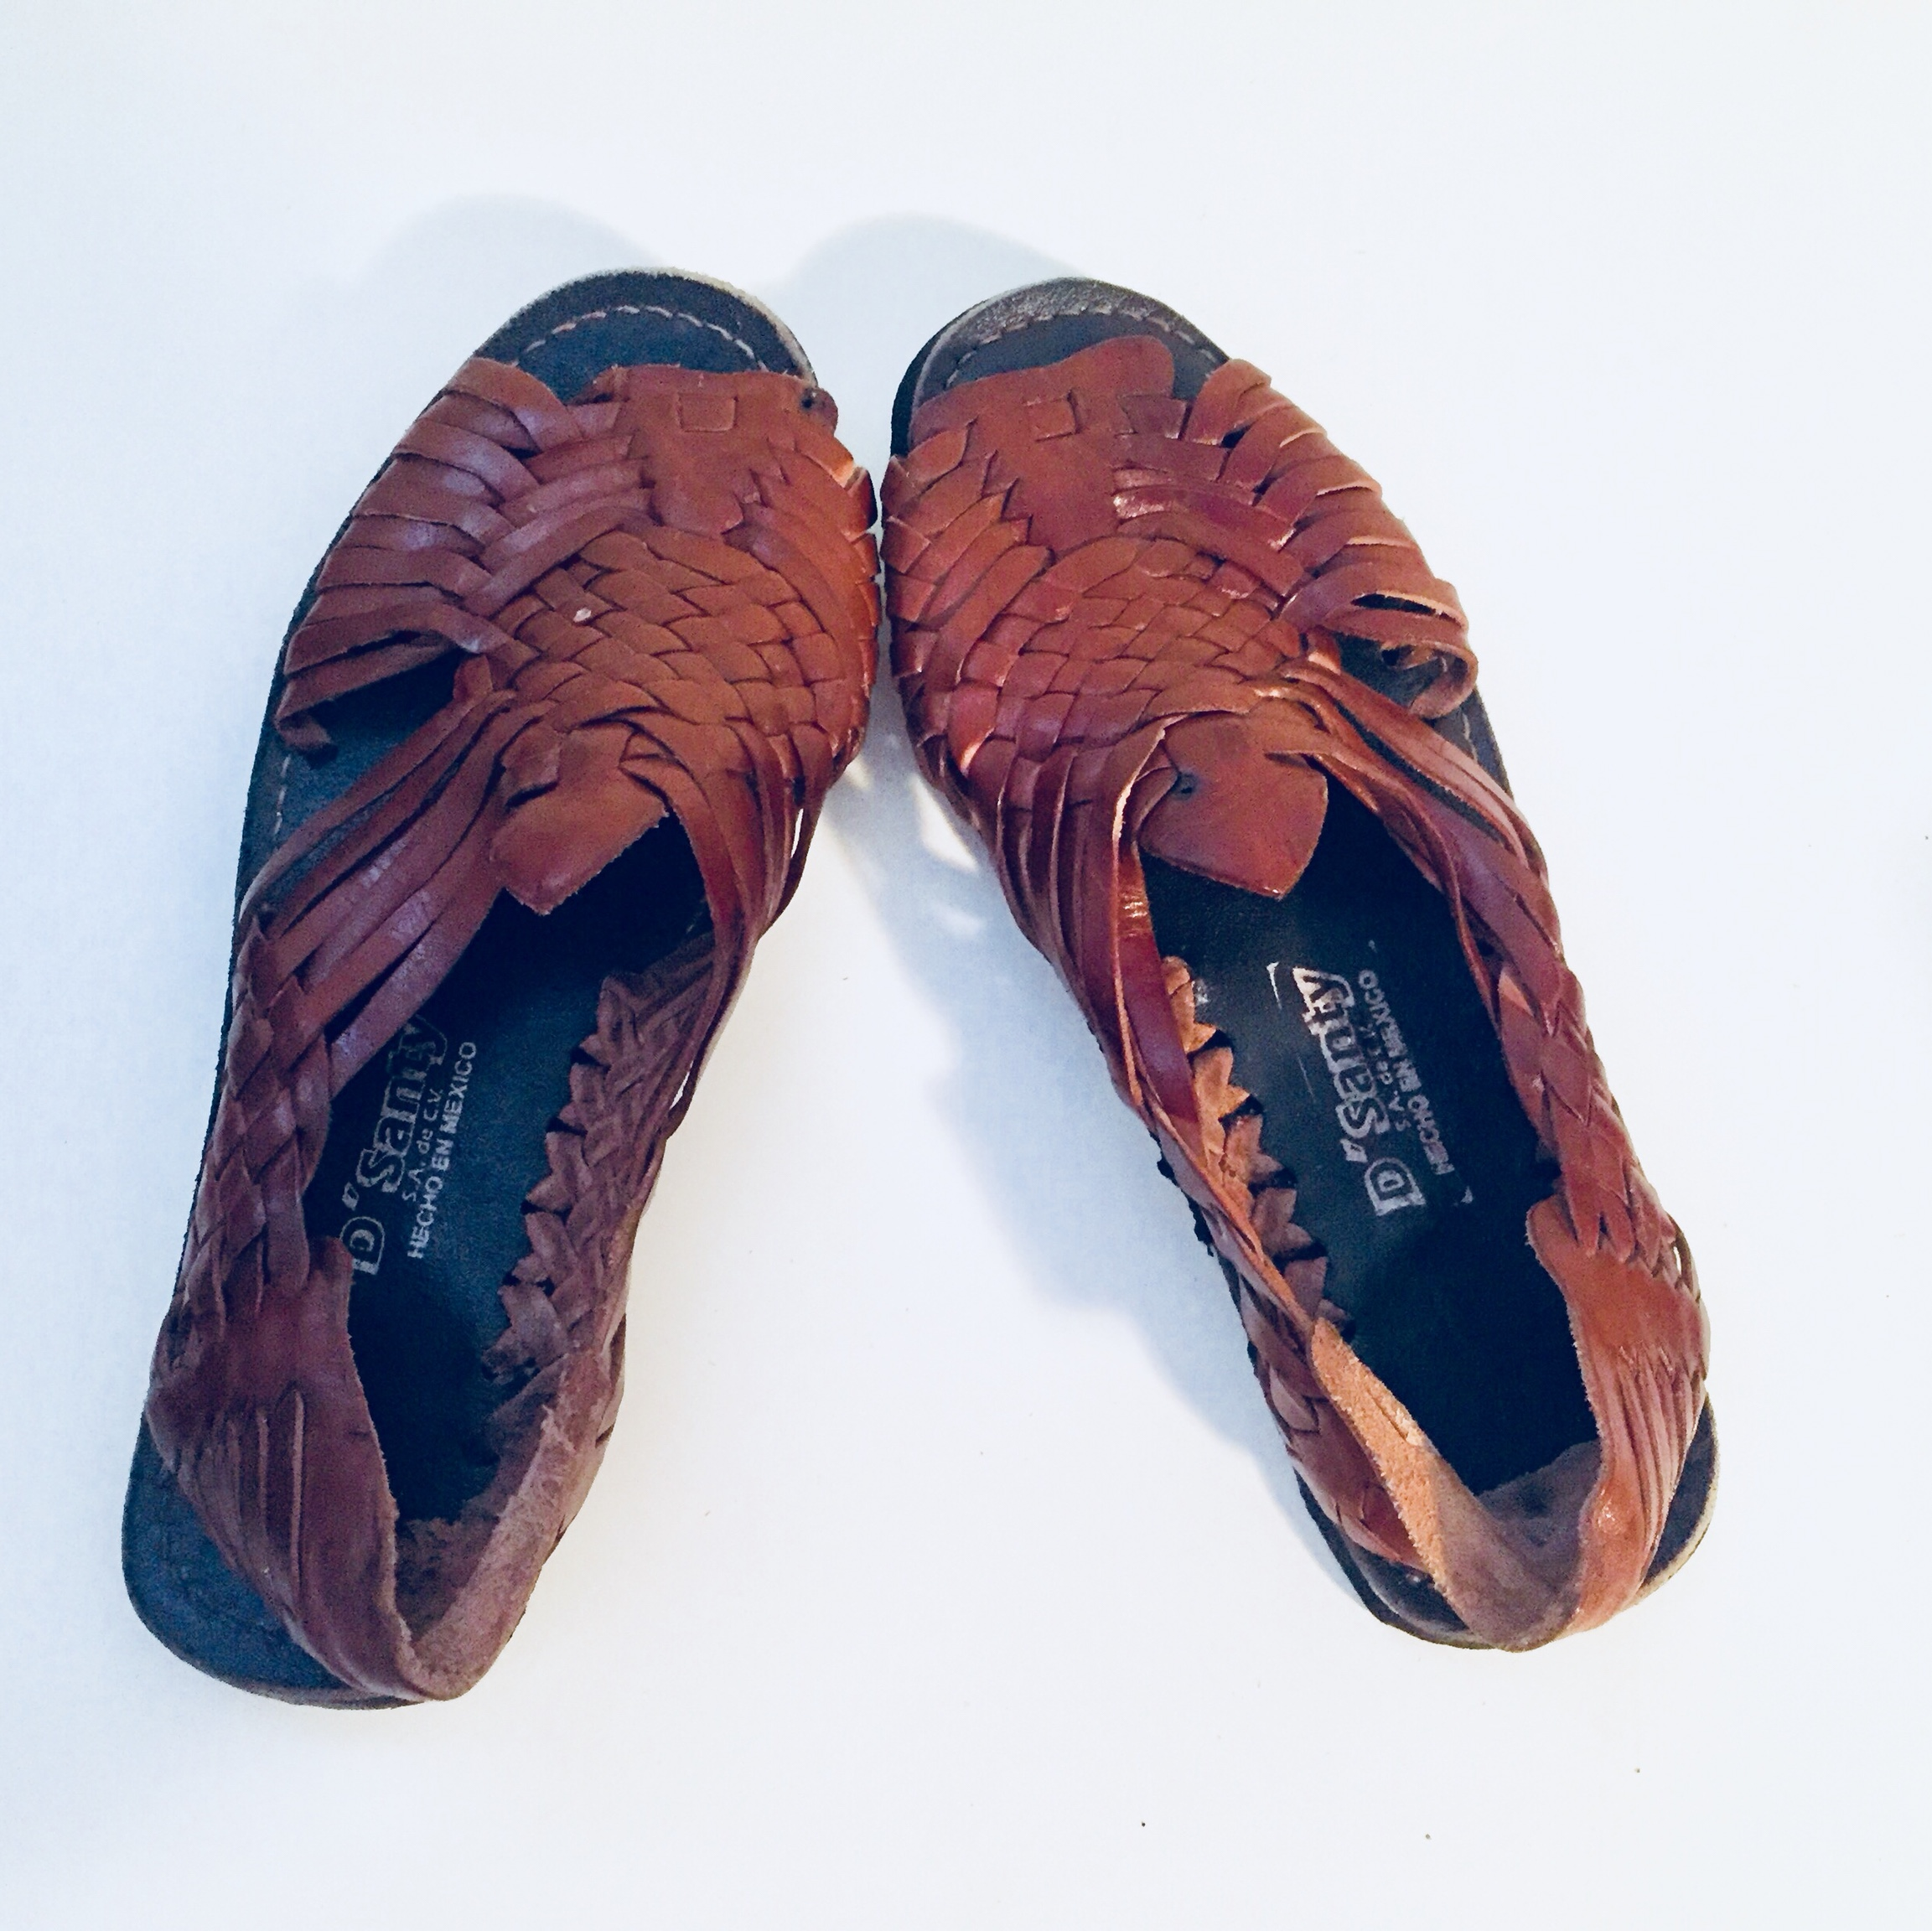 34f81b16f96a2 Vintage Brown Leather Huarache Sandals Mexican... - Depop